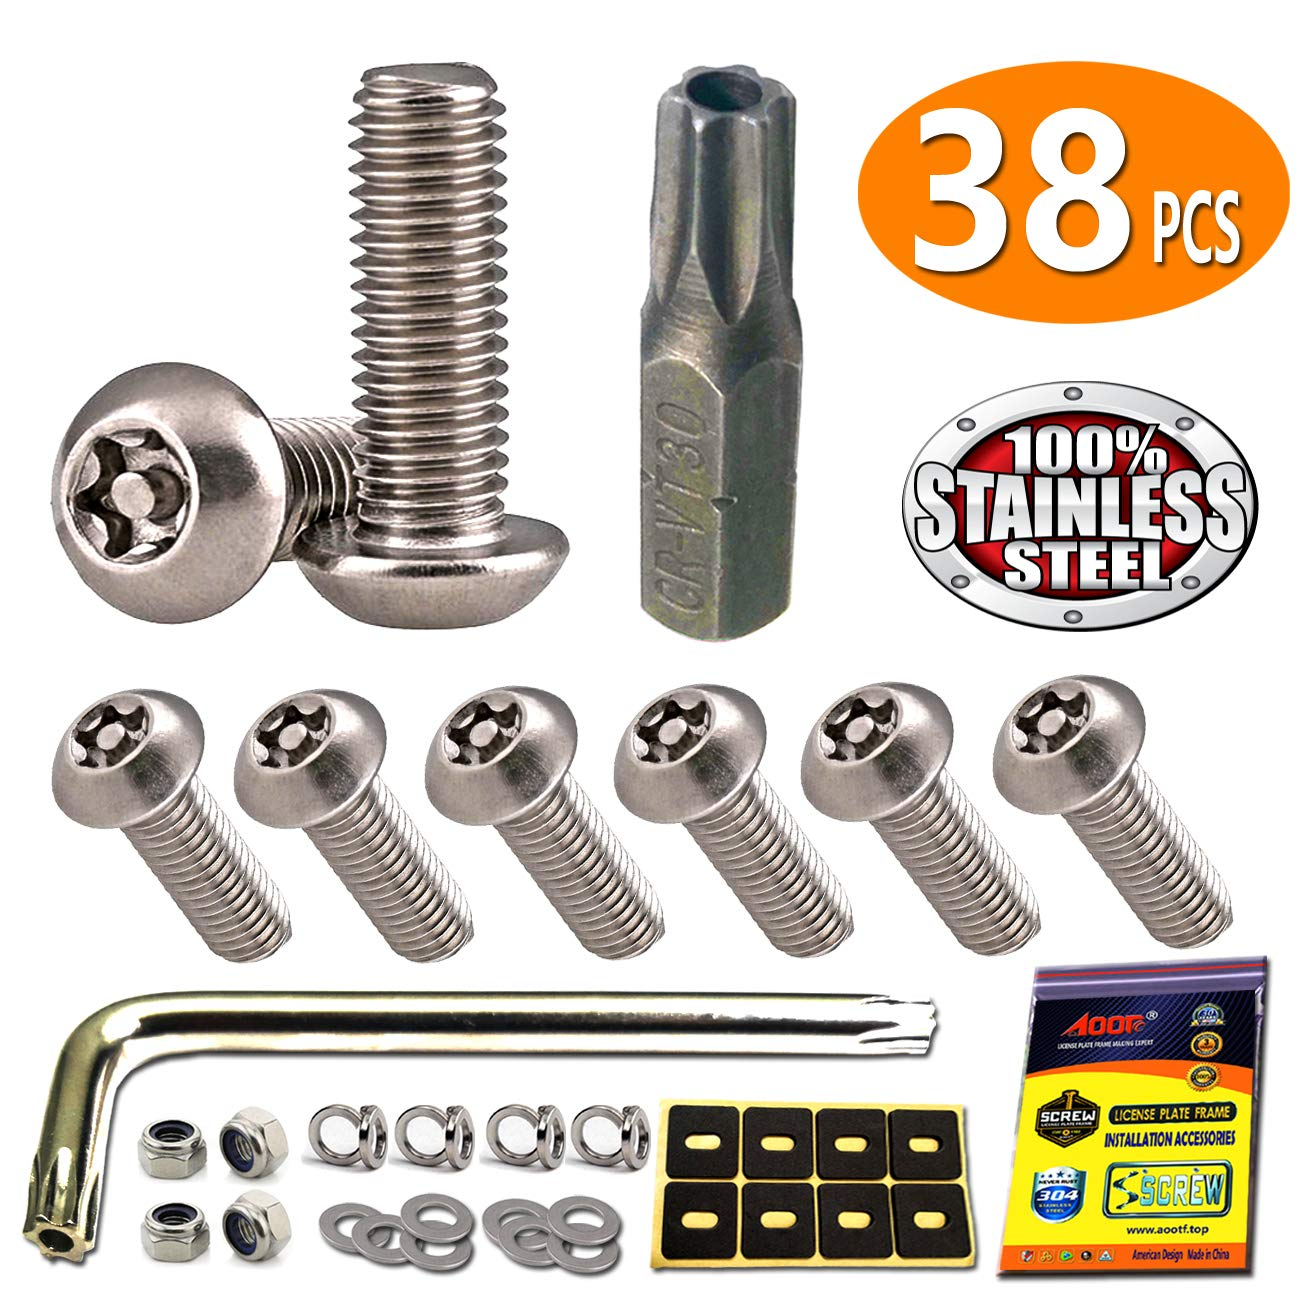 Anti Theft Security Stainless Steel Motorcycle License Plate Frame Bolts Screws